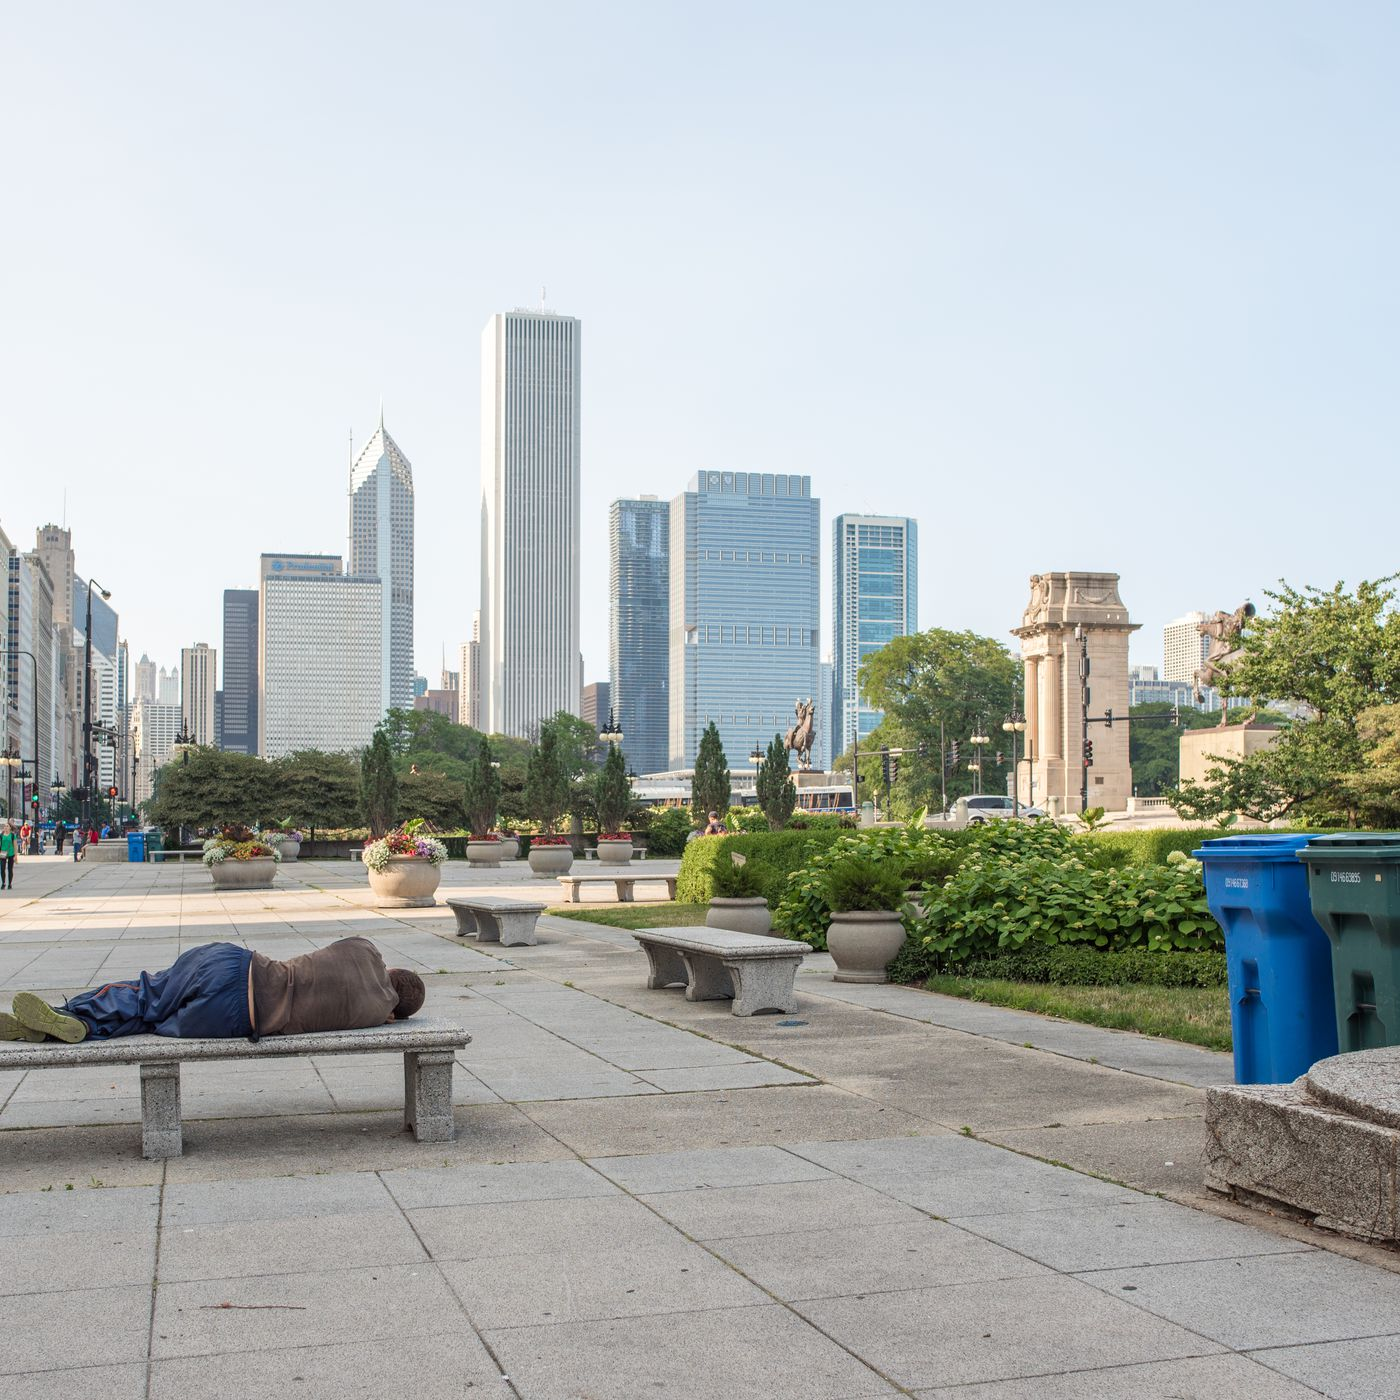 How can Chicago protect its homeless population from coronavirus? - Curbed  Chicago